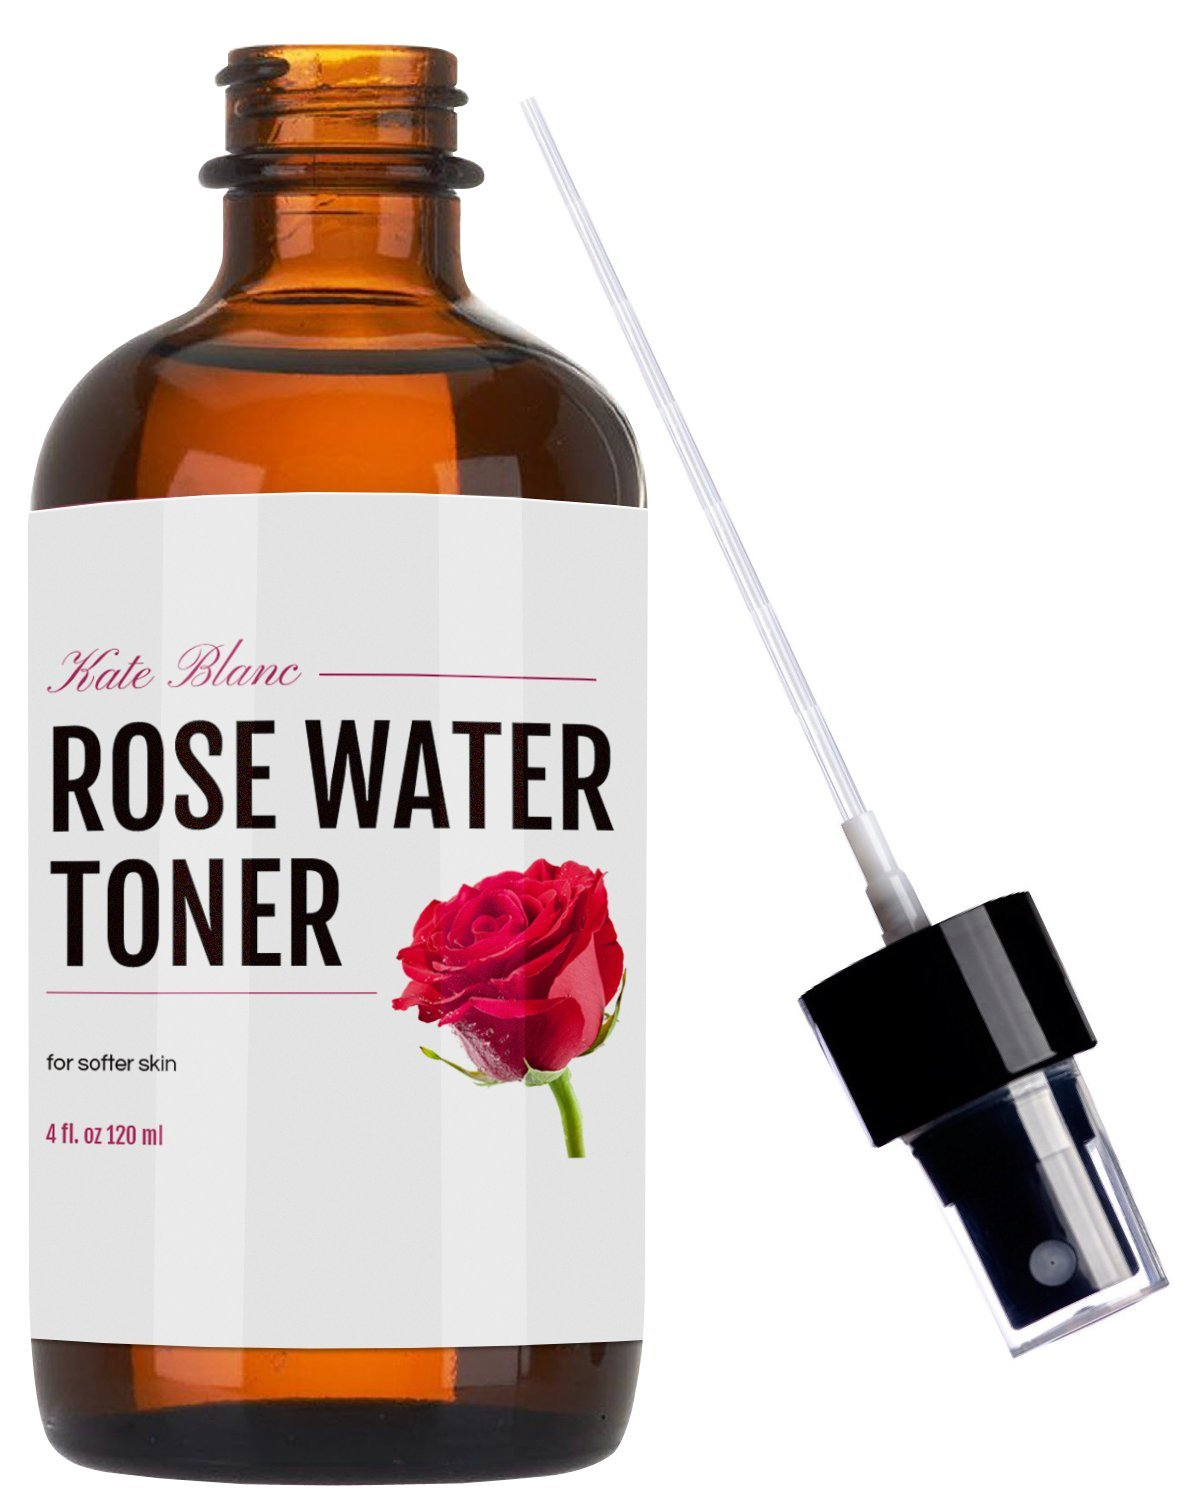 Rose Water Facial Toner & Spray (4oz) by Kate Blanc. Alcohol Free. Chemical Free. Instant Freshness for Face. Natural Astringent. Makeup Remover. Hydrating Face Mist to Reduce Red Spots. Softer Skin.